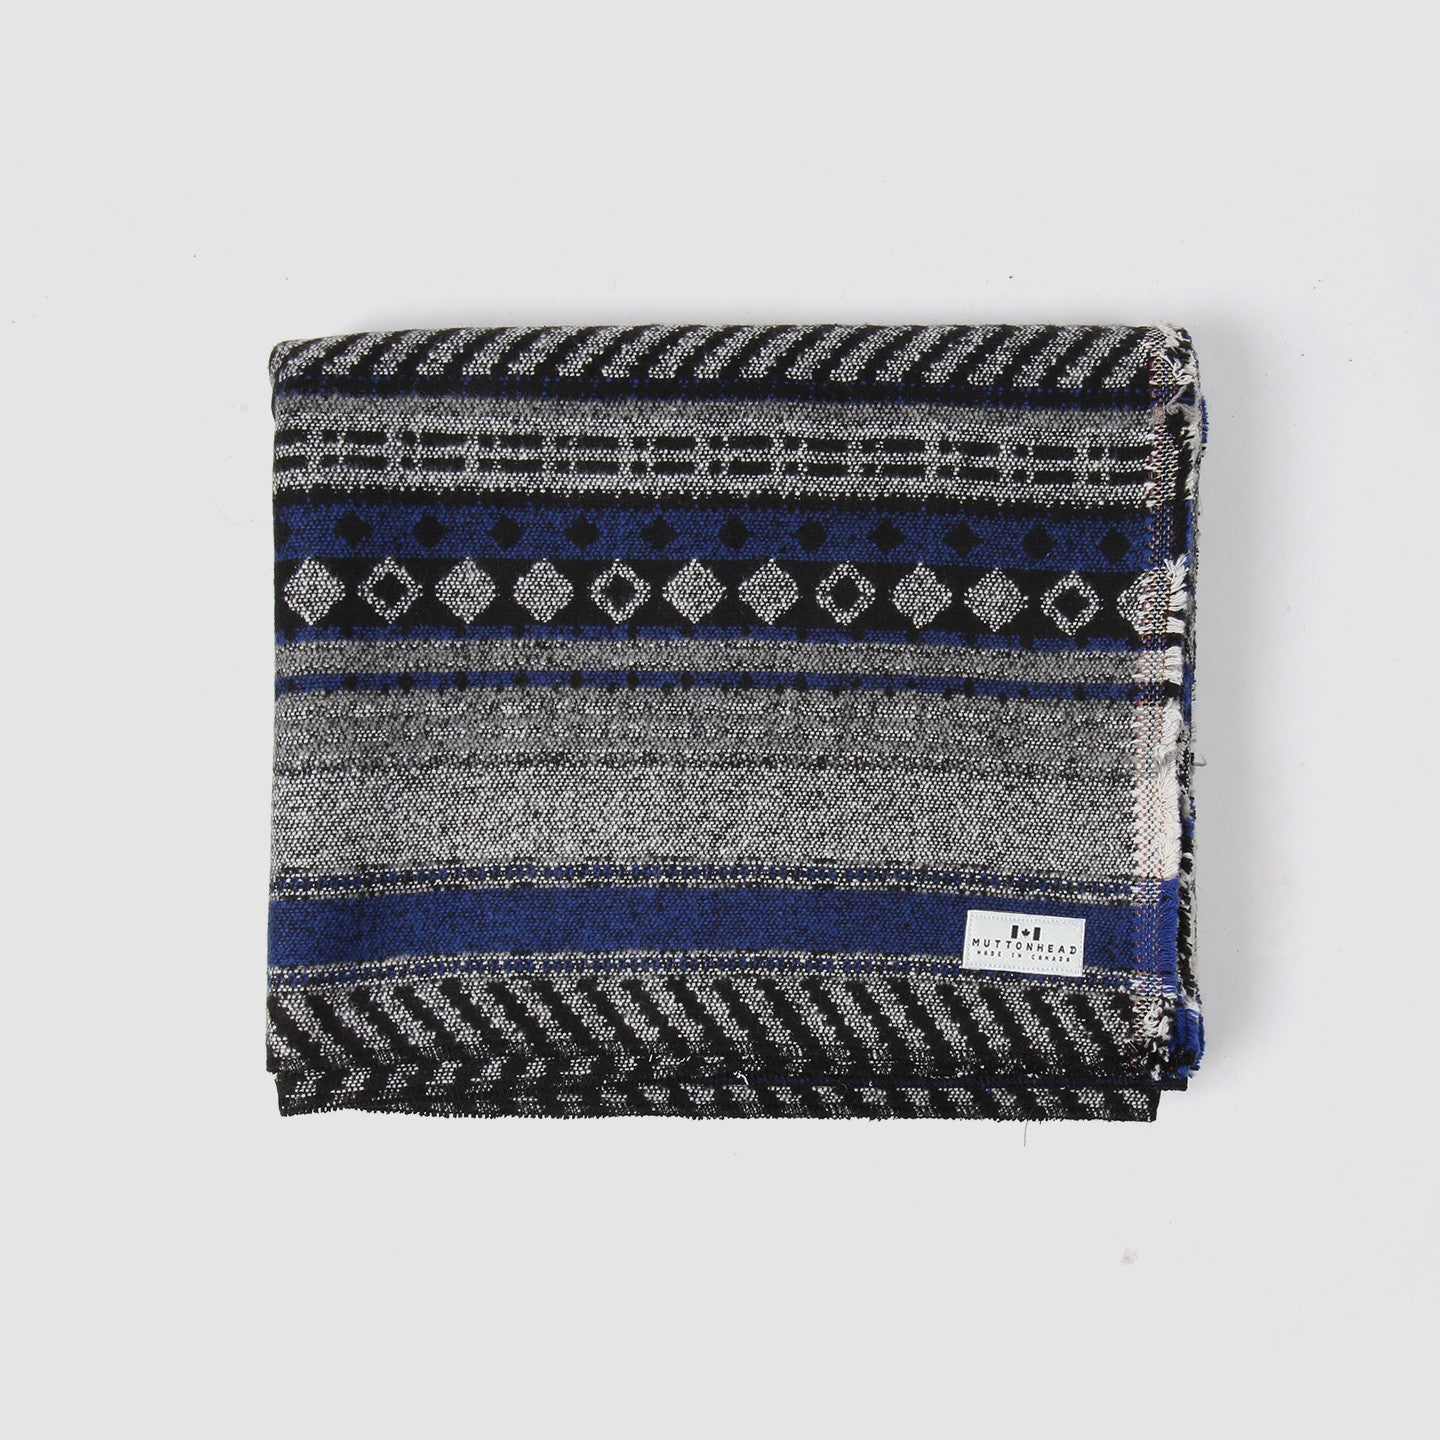 Saddle Blanket - Black & Blue